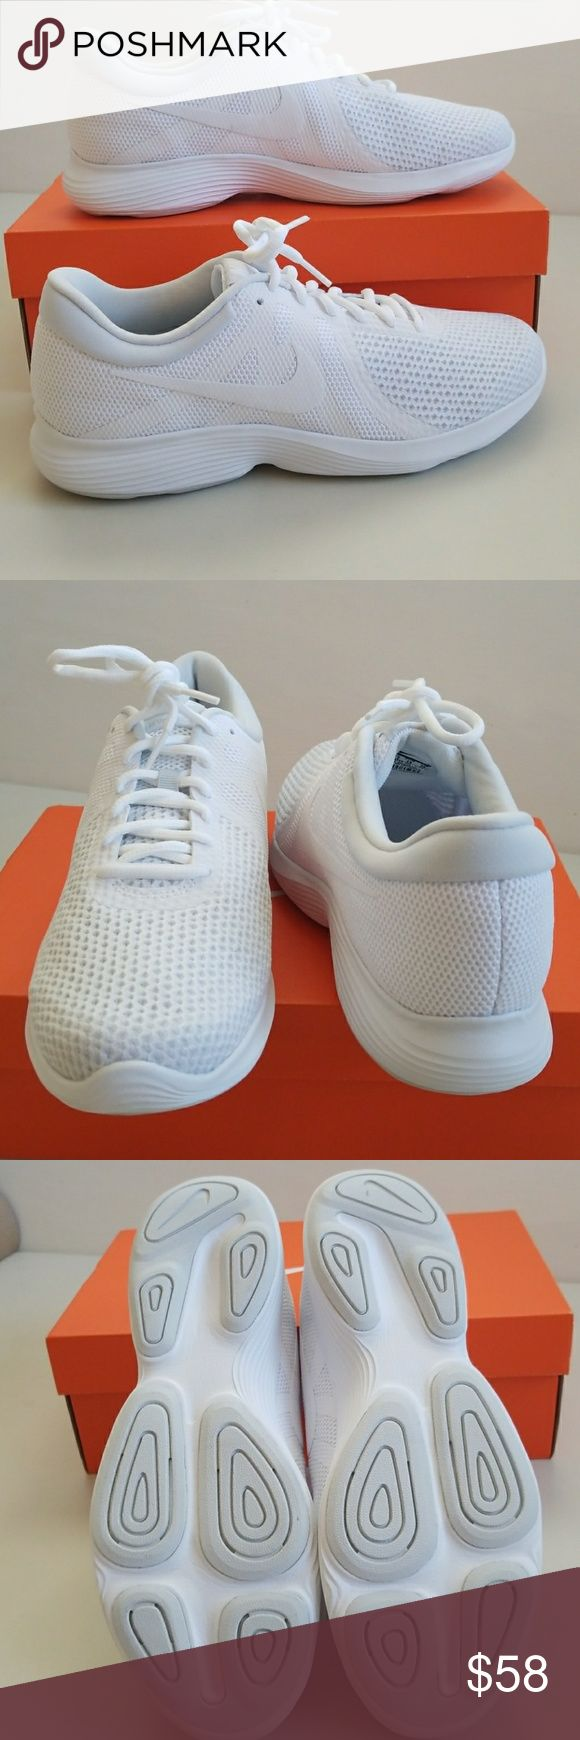 NWT Nike Wide Width New Nike crisp white wide width shoes. Nike Shoes Athletic Shoes